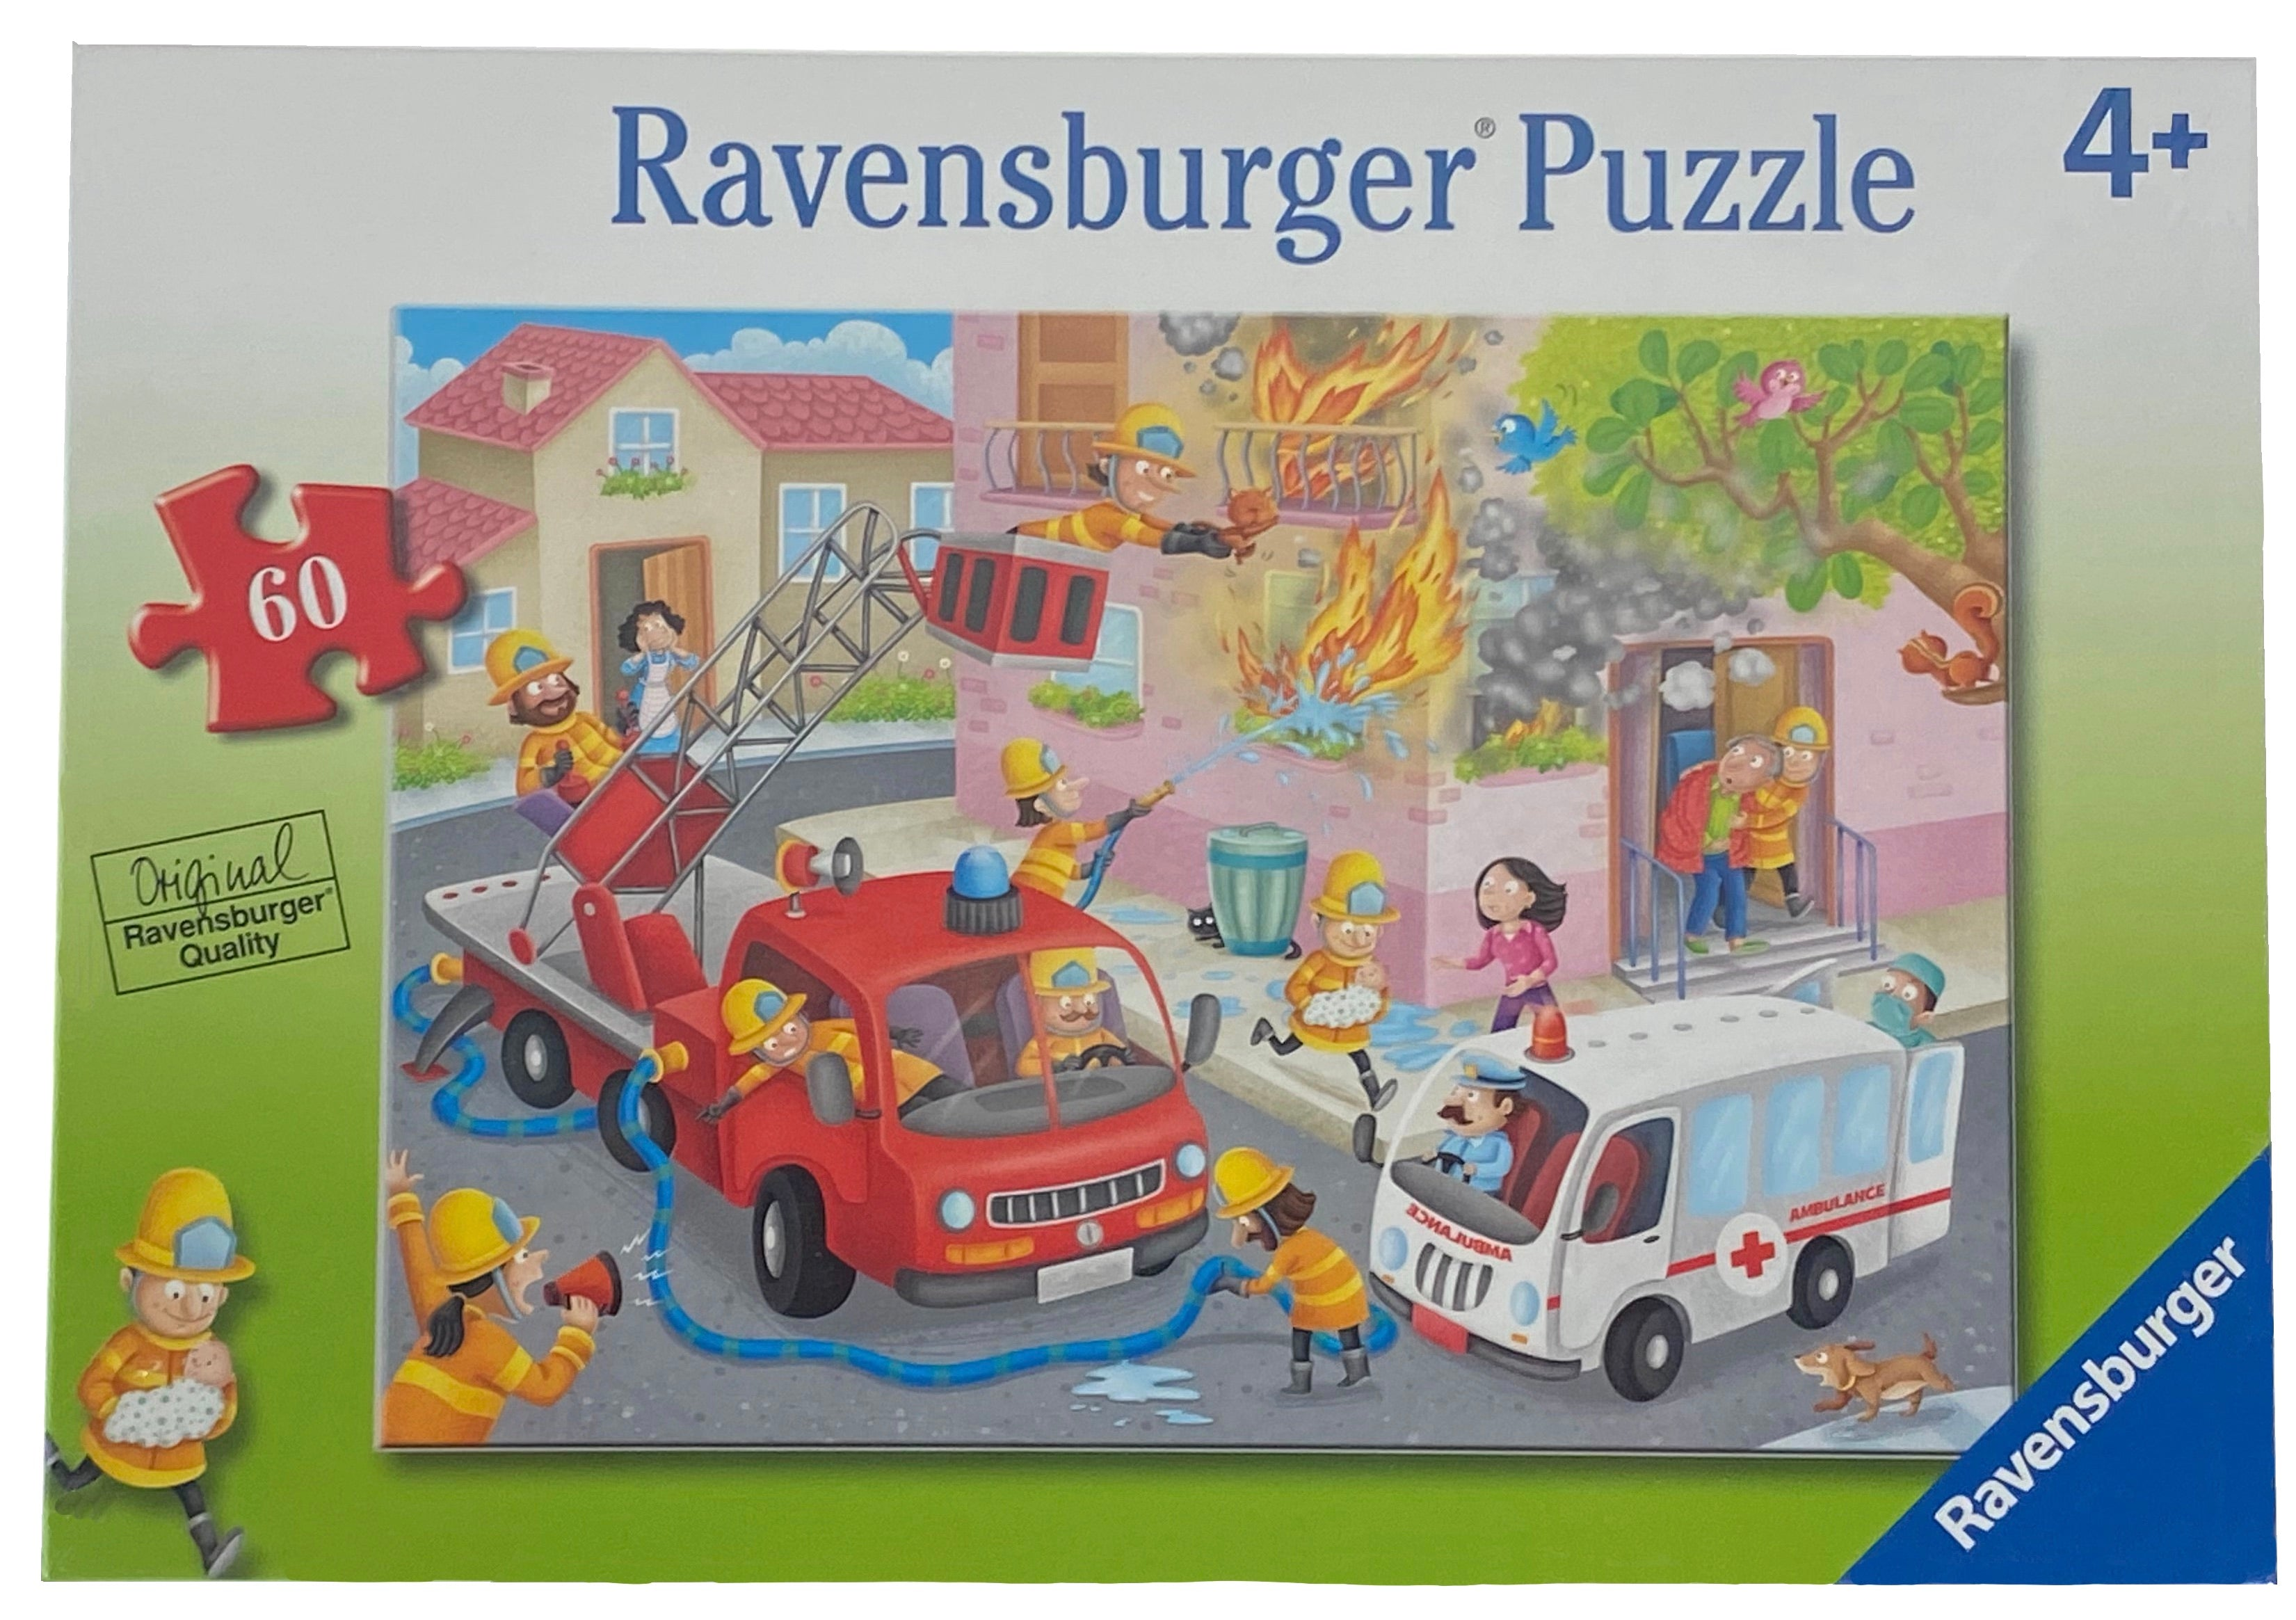 Firefighter Rescue 60 Piece Puzzle